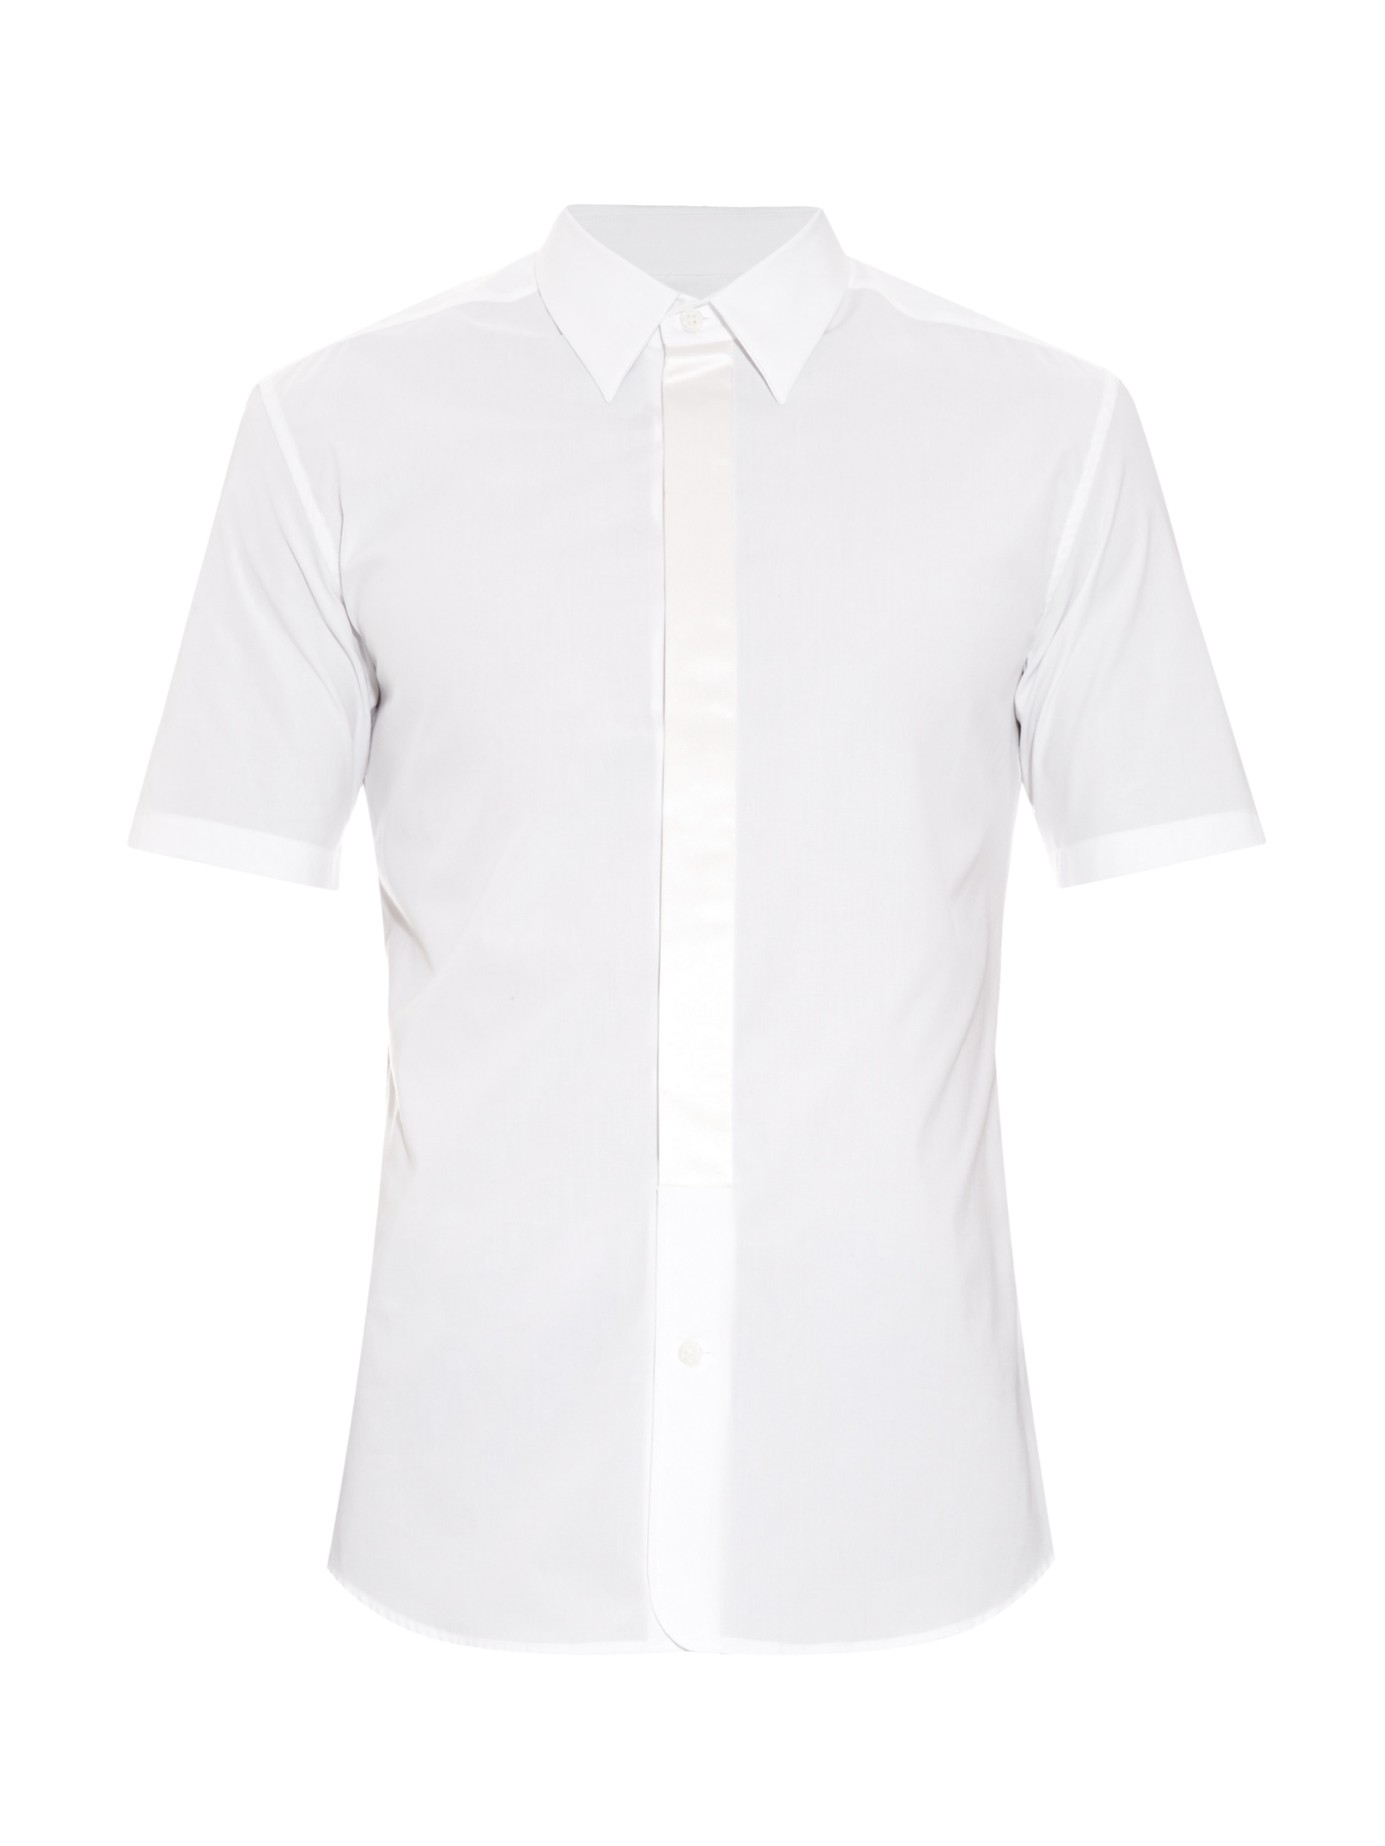 Marc Jacobs Silk Placket Short Sleeved Cotton Shirt In